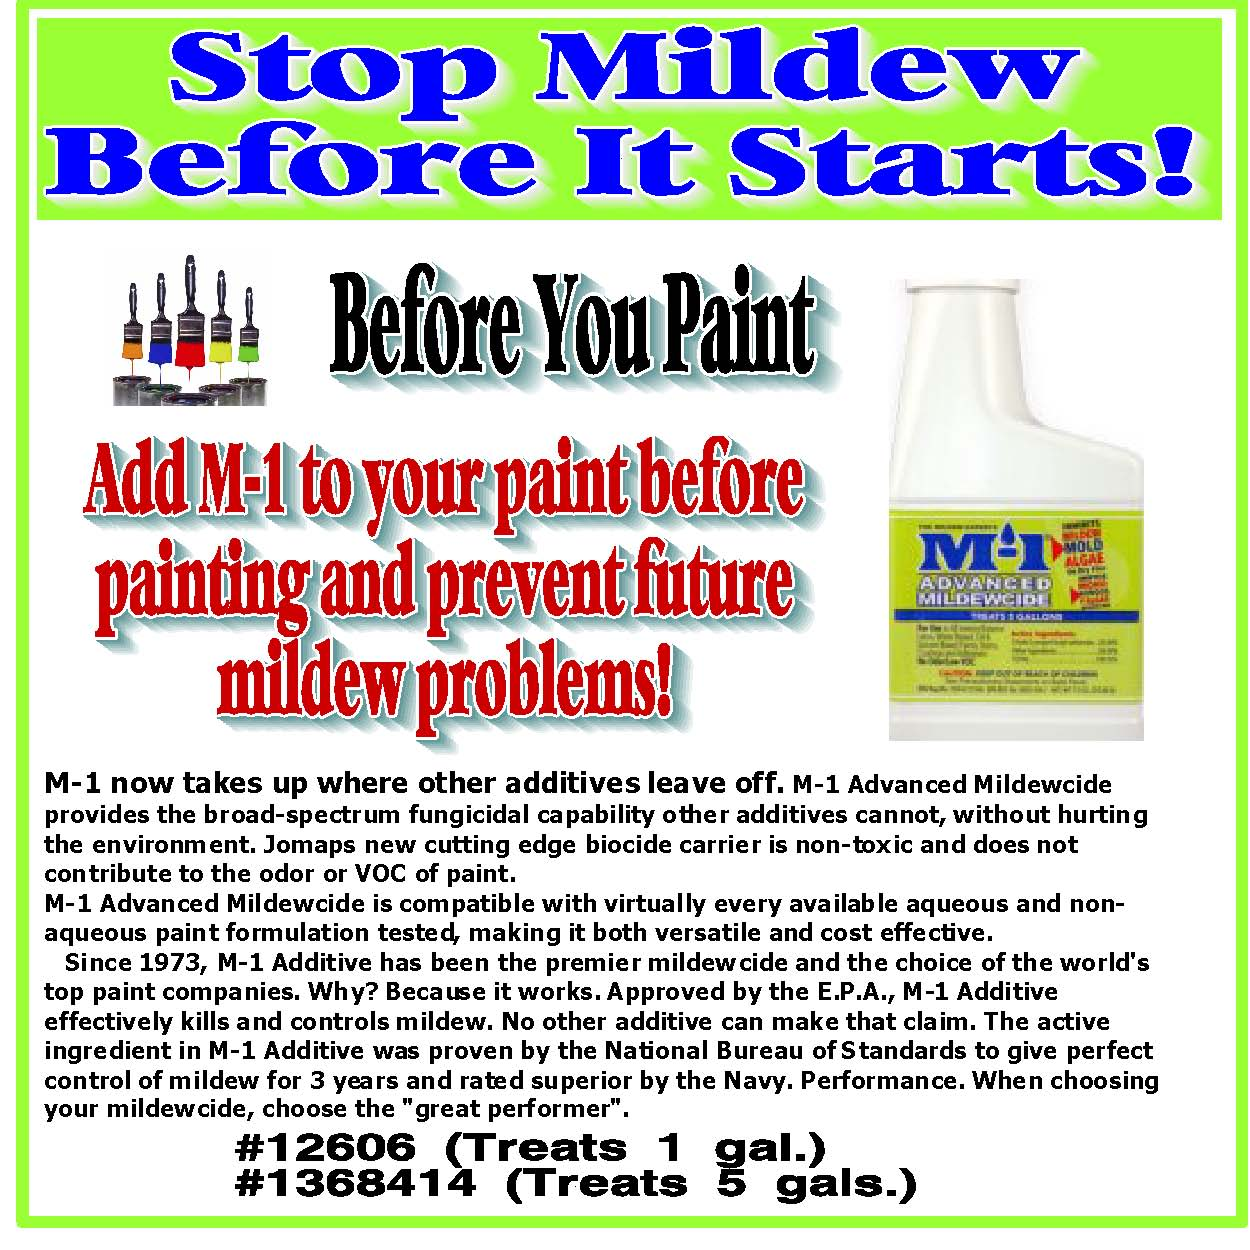 Glow in the dark paint exterior glow paint for exteriors buy noxton for exteriors eco glowing - Rust oleum glow in the dark paint exterior collection ...